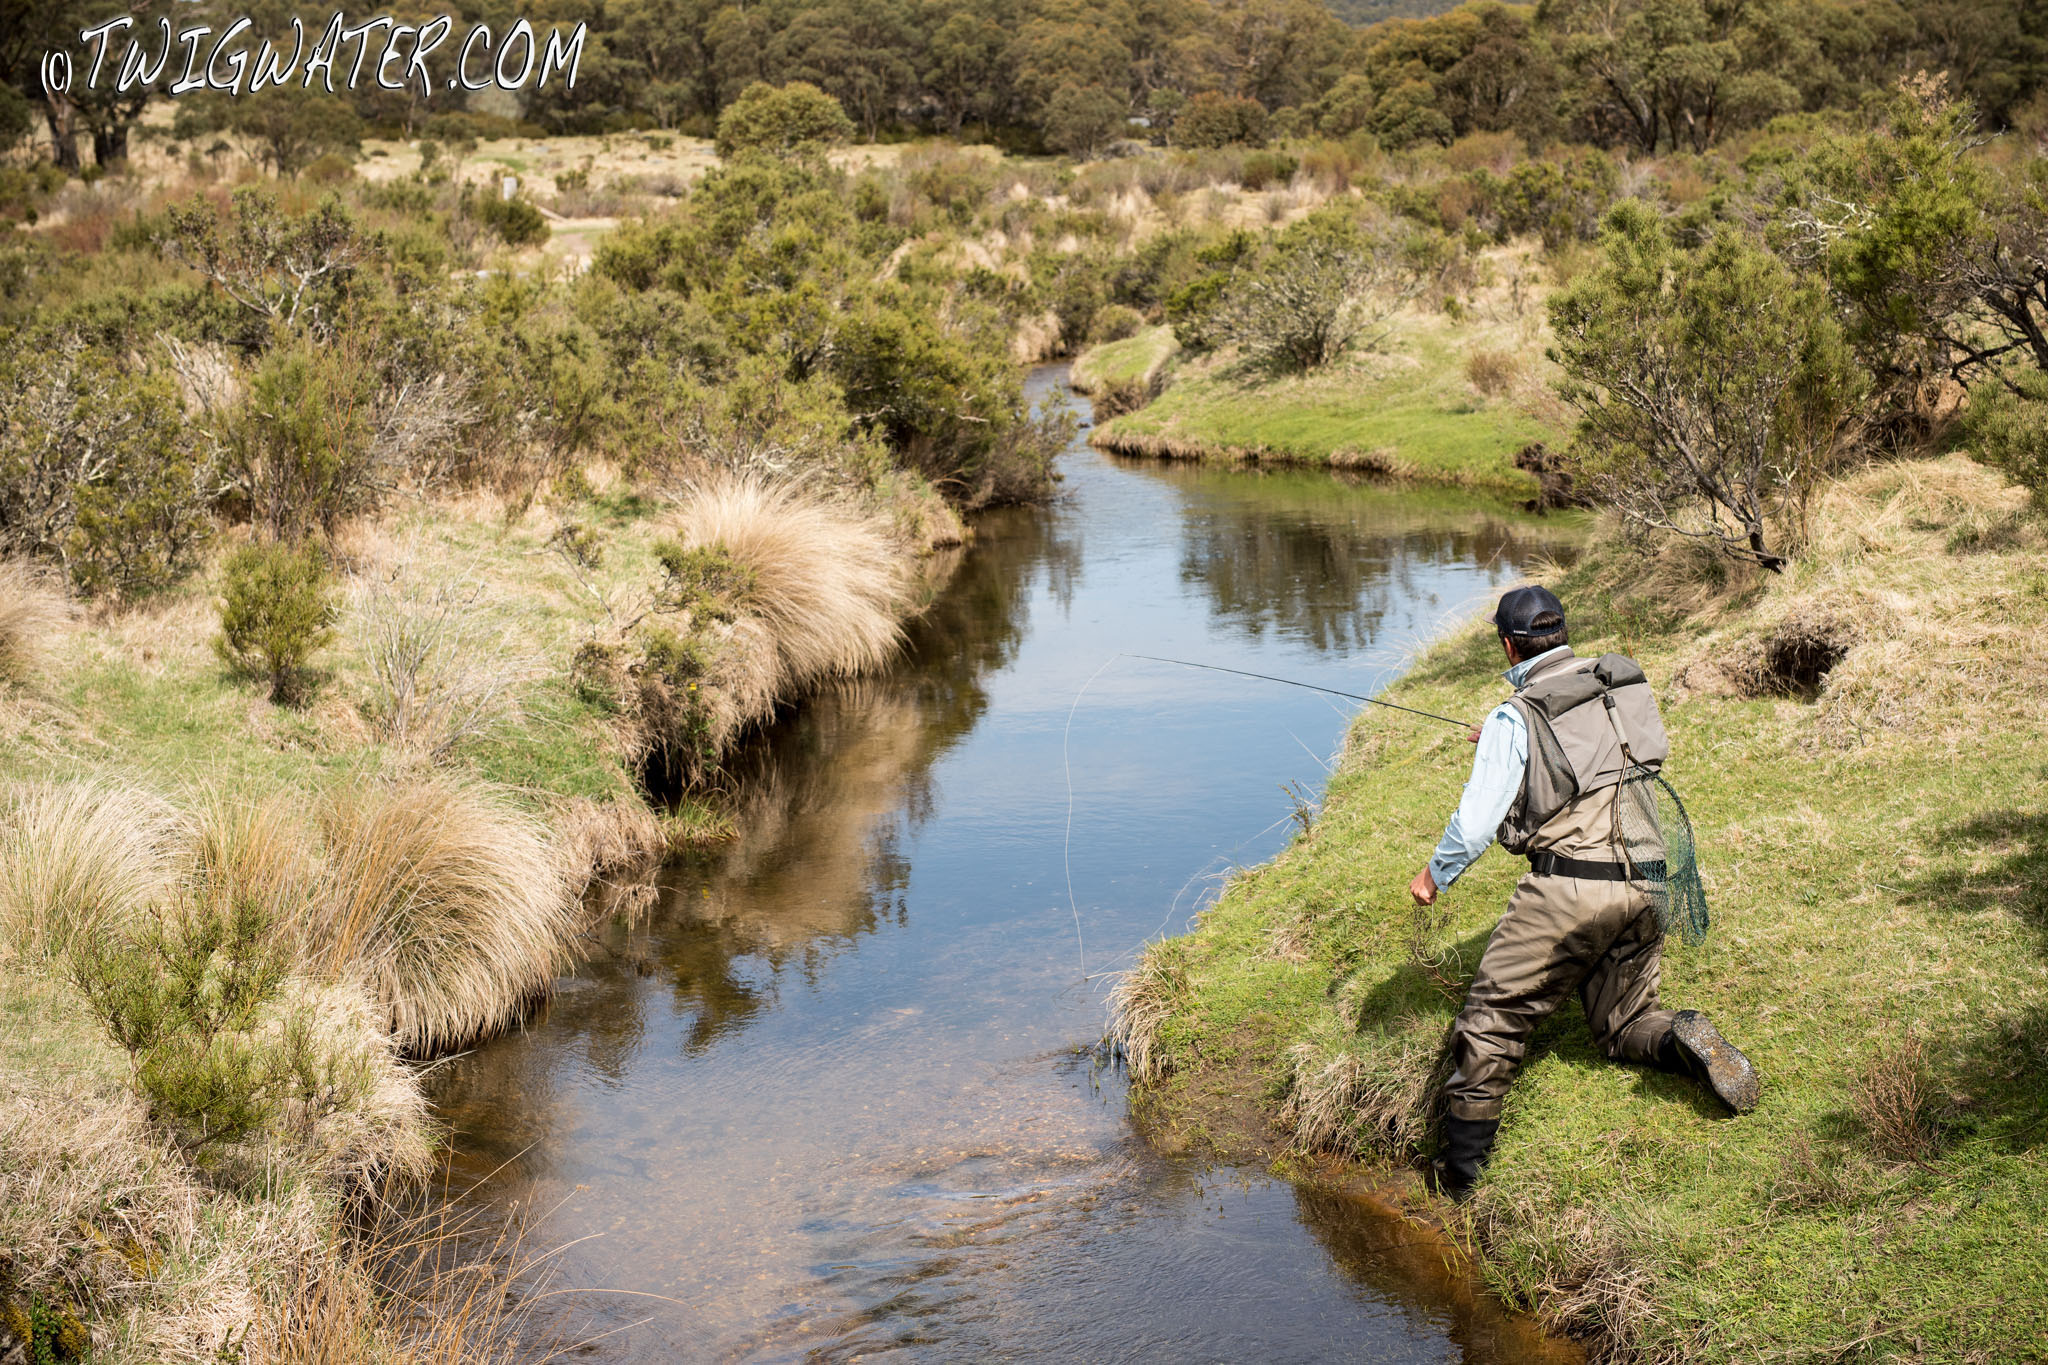 Small stream fly fishing at twigwater.com